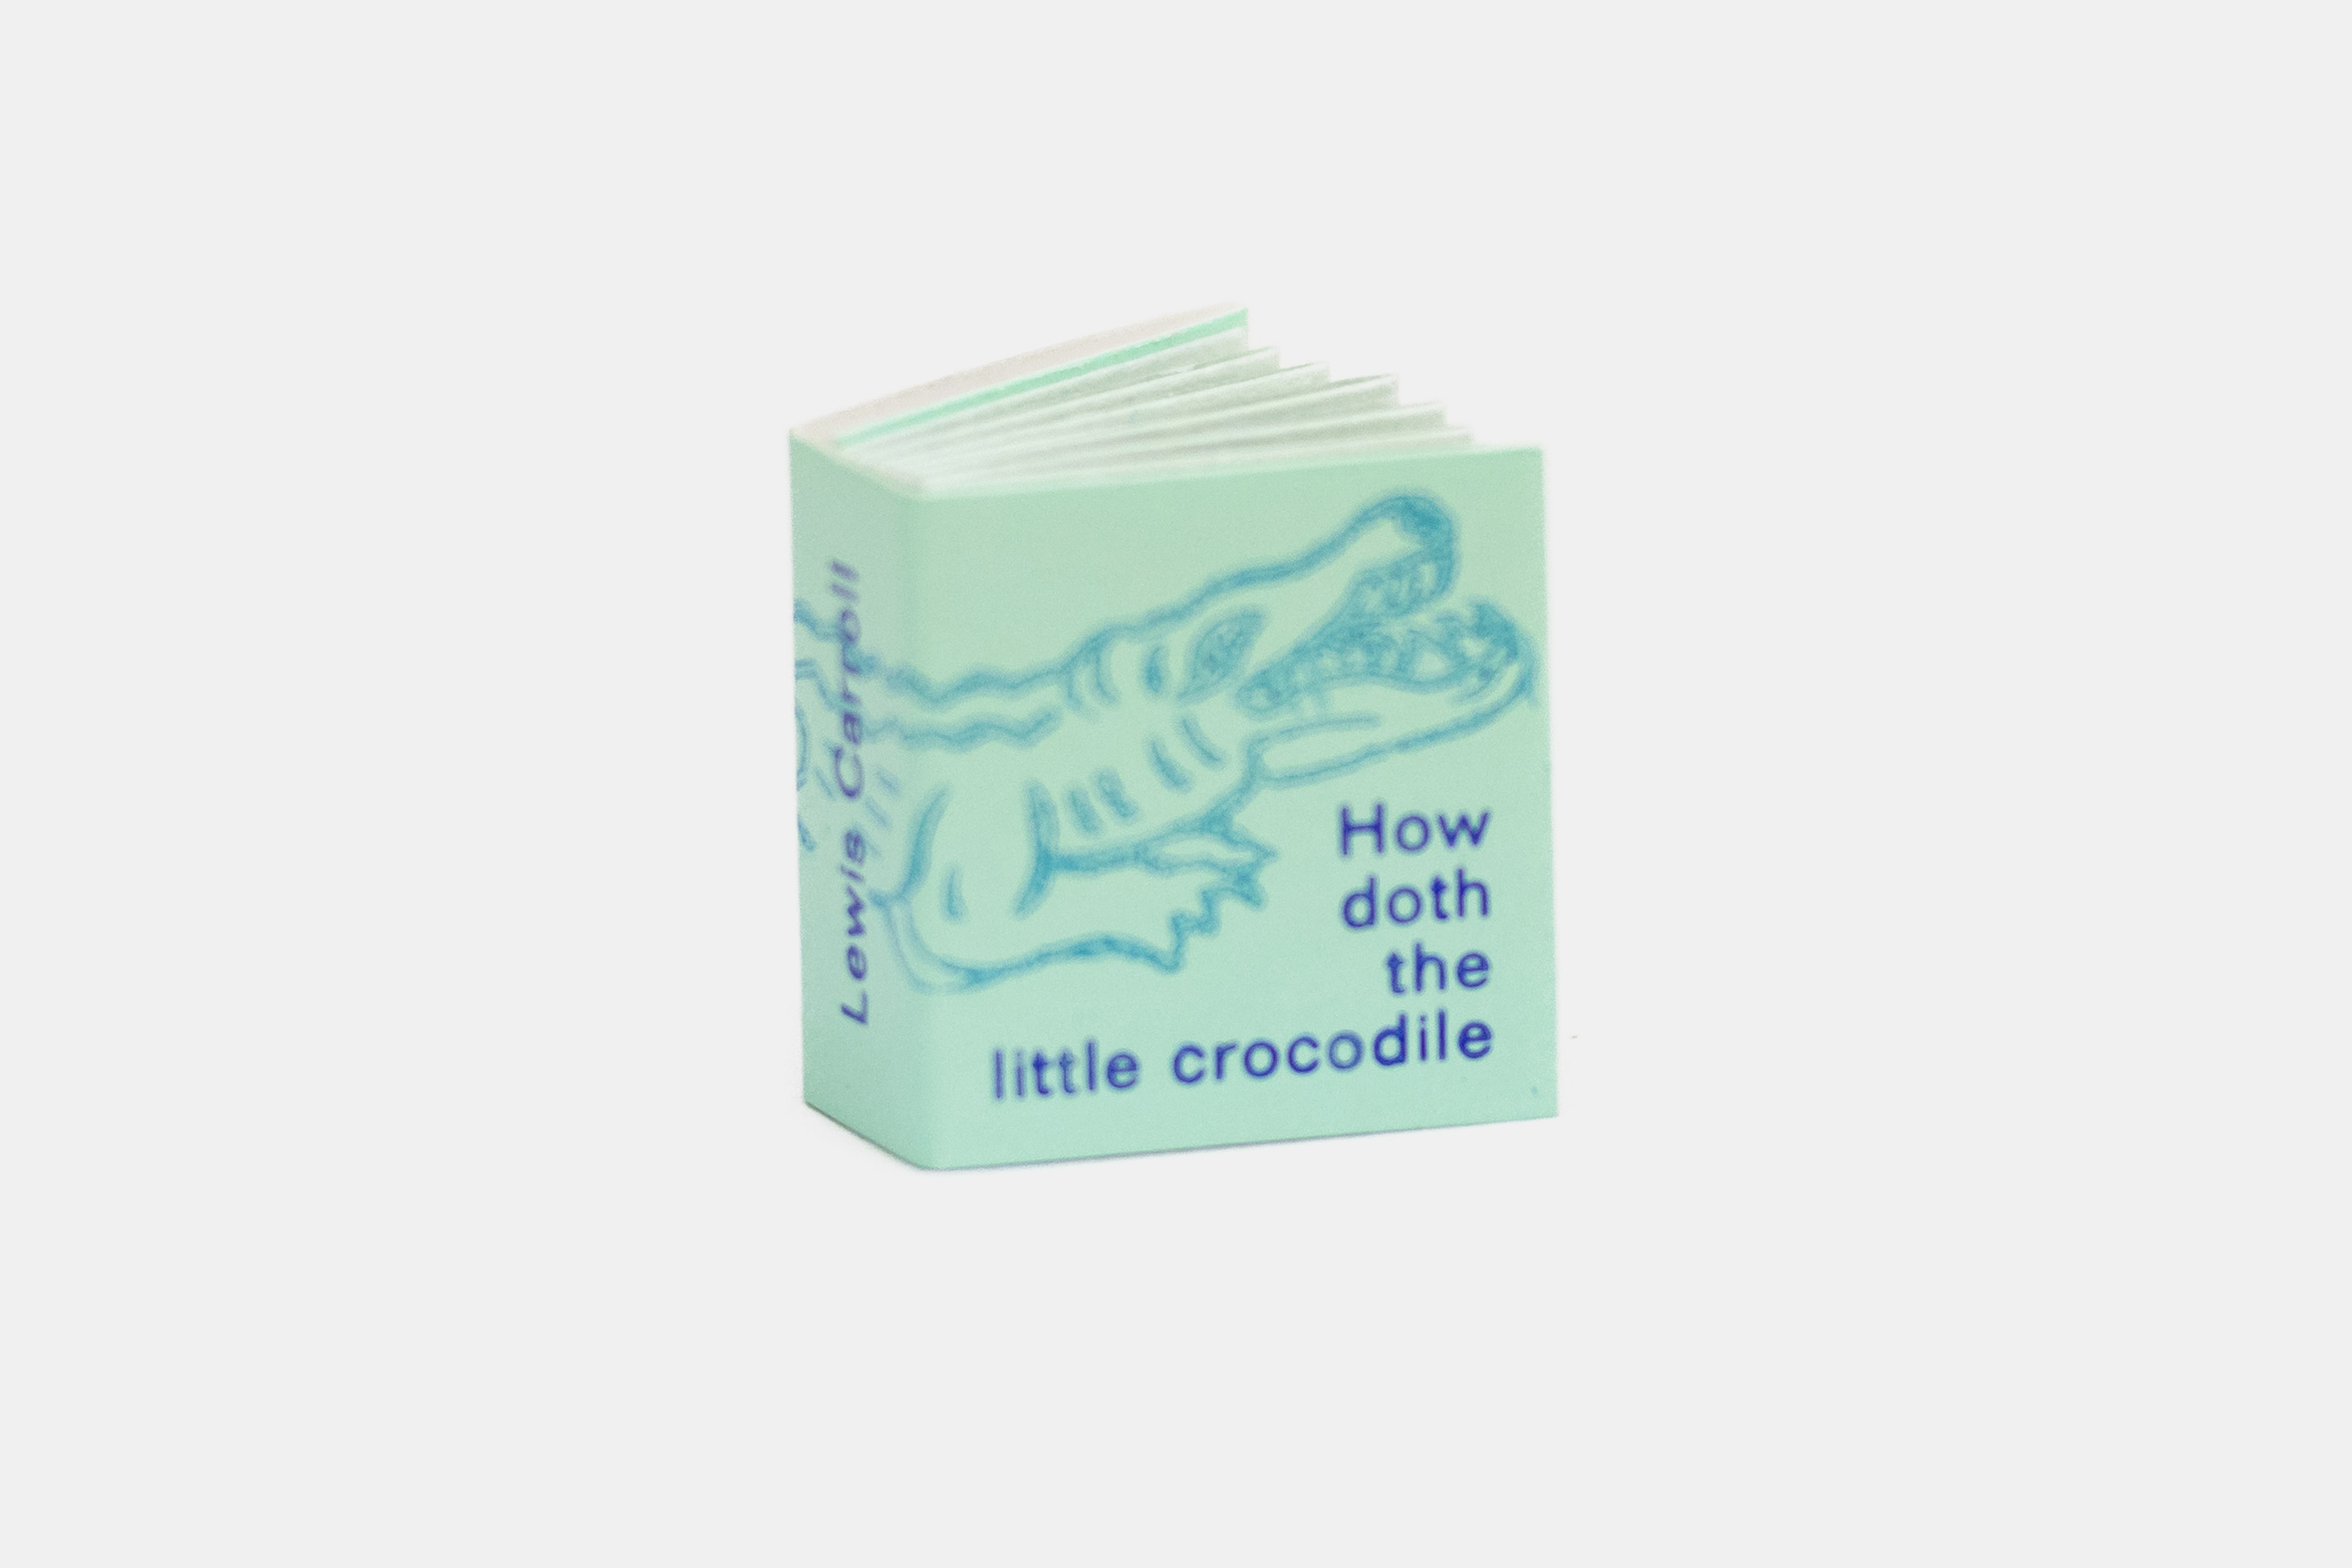 How doth the little crocodile Minileporello Fliegenkopf